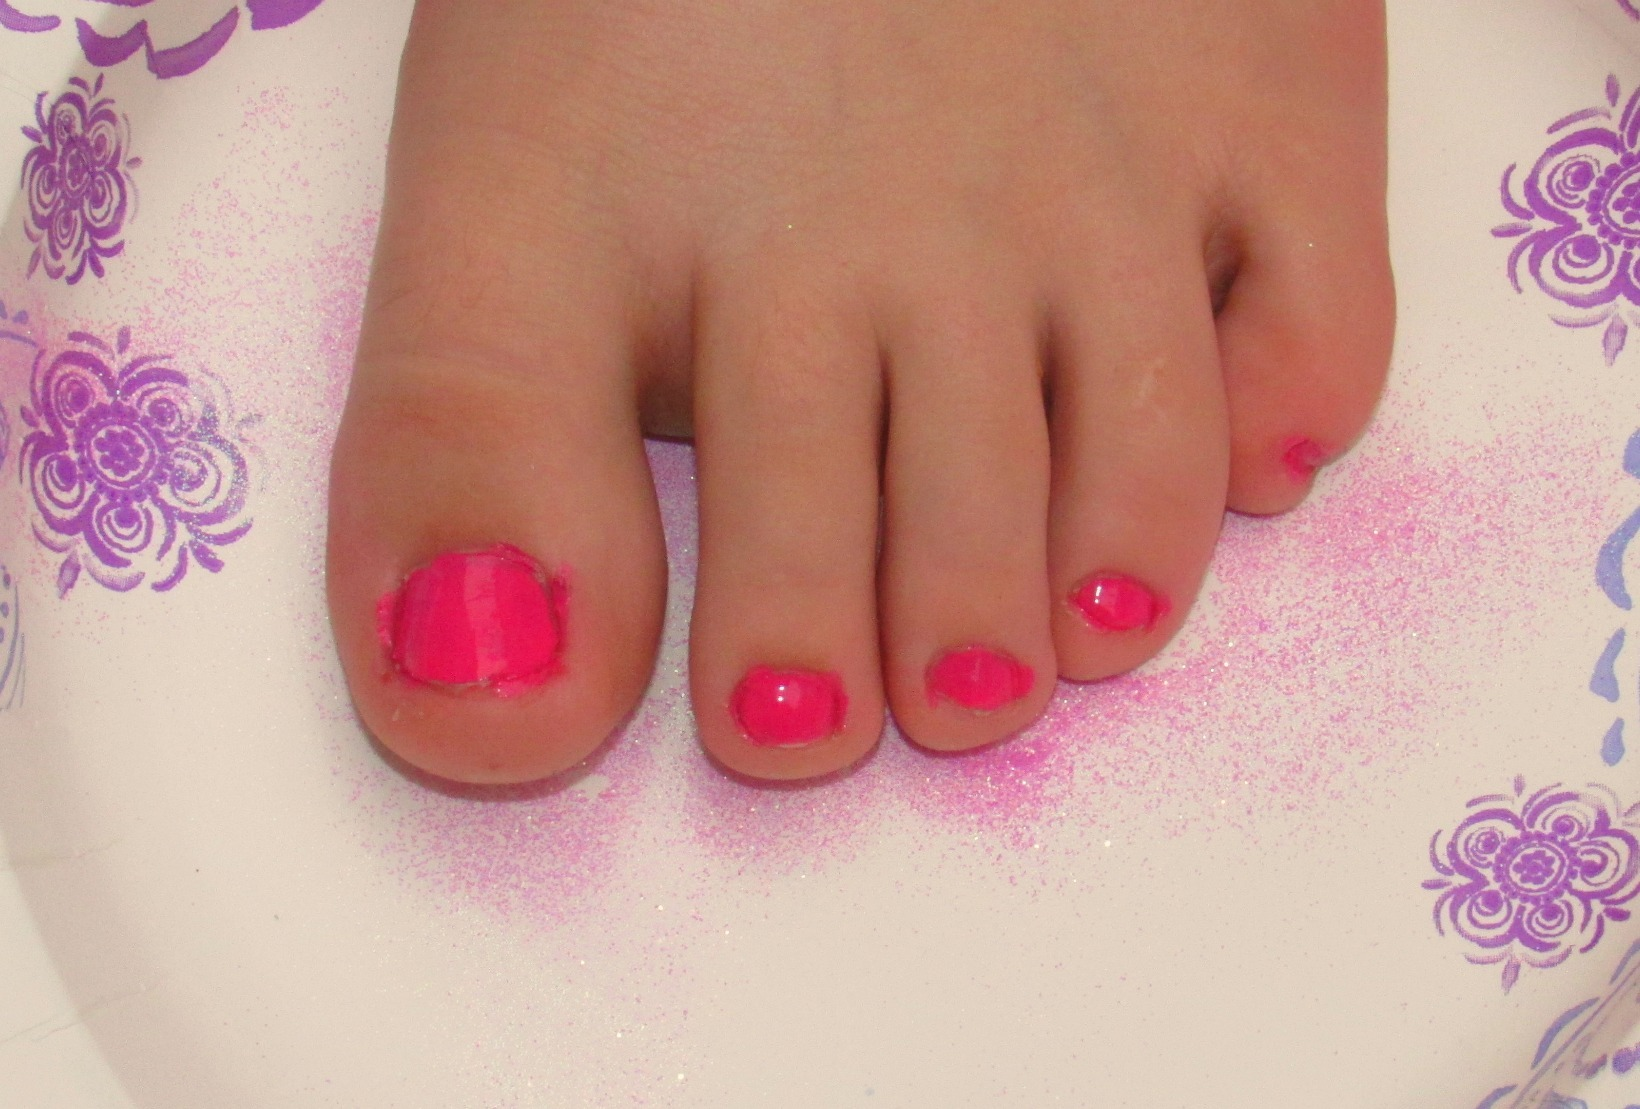 DIY Glitter Toes - Quick and Easy Sparkly Nails That Will Last for Weeks